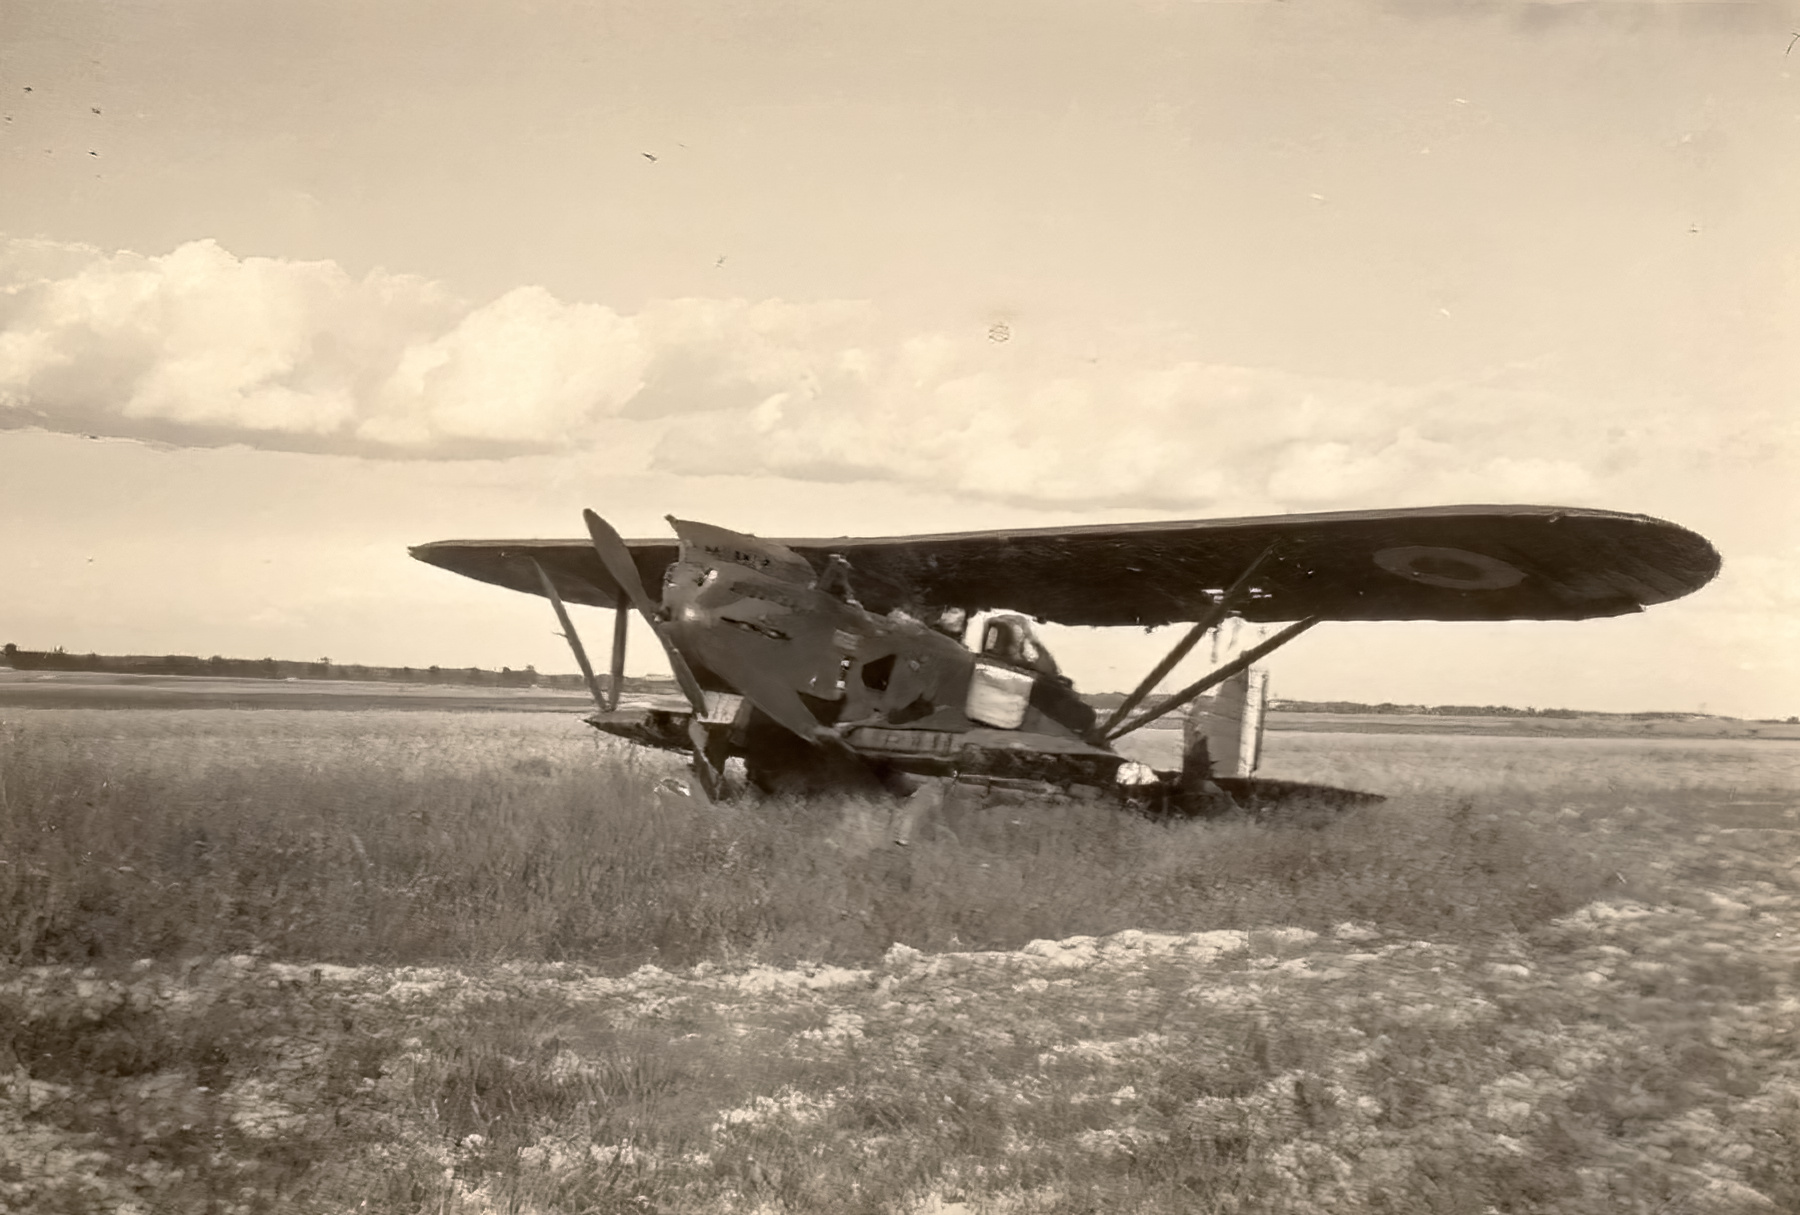 French Airforce Breguet 270 grounded at a French airbase France 1940 ebay 01